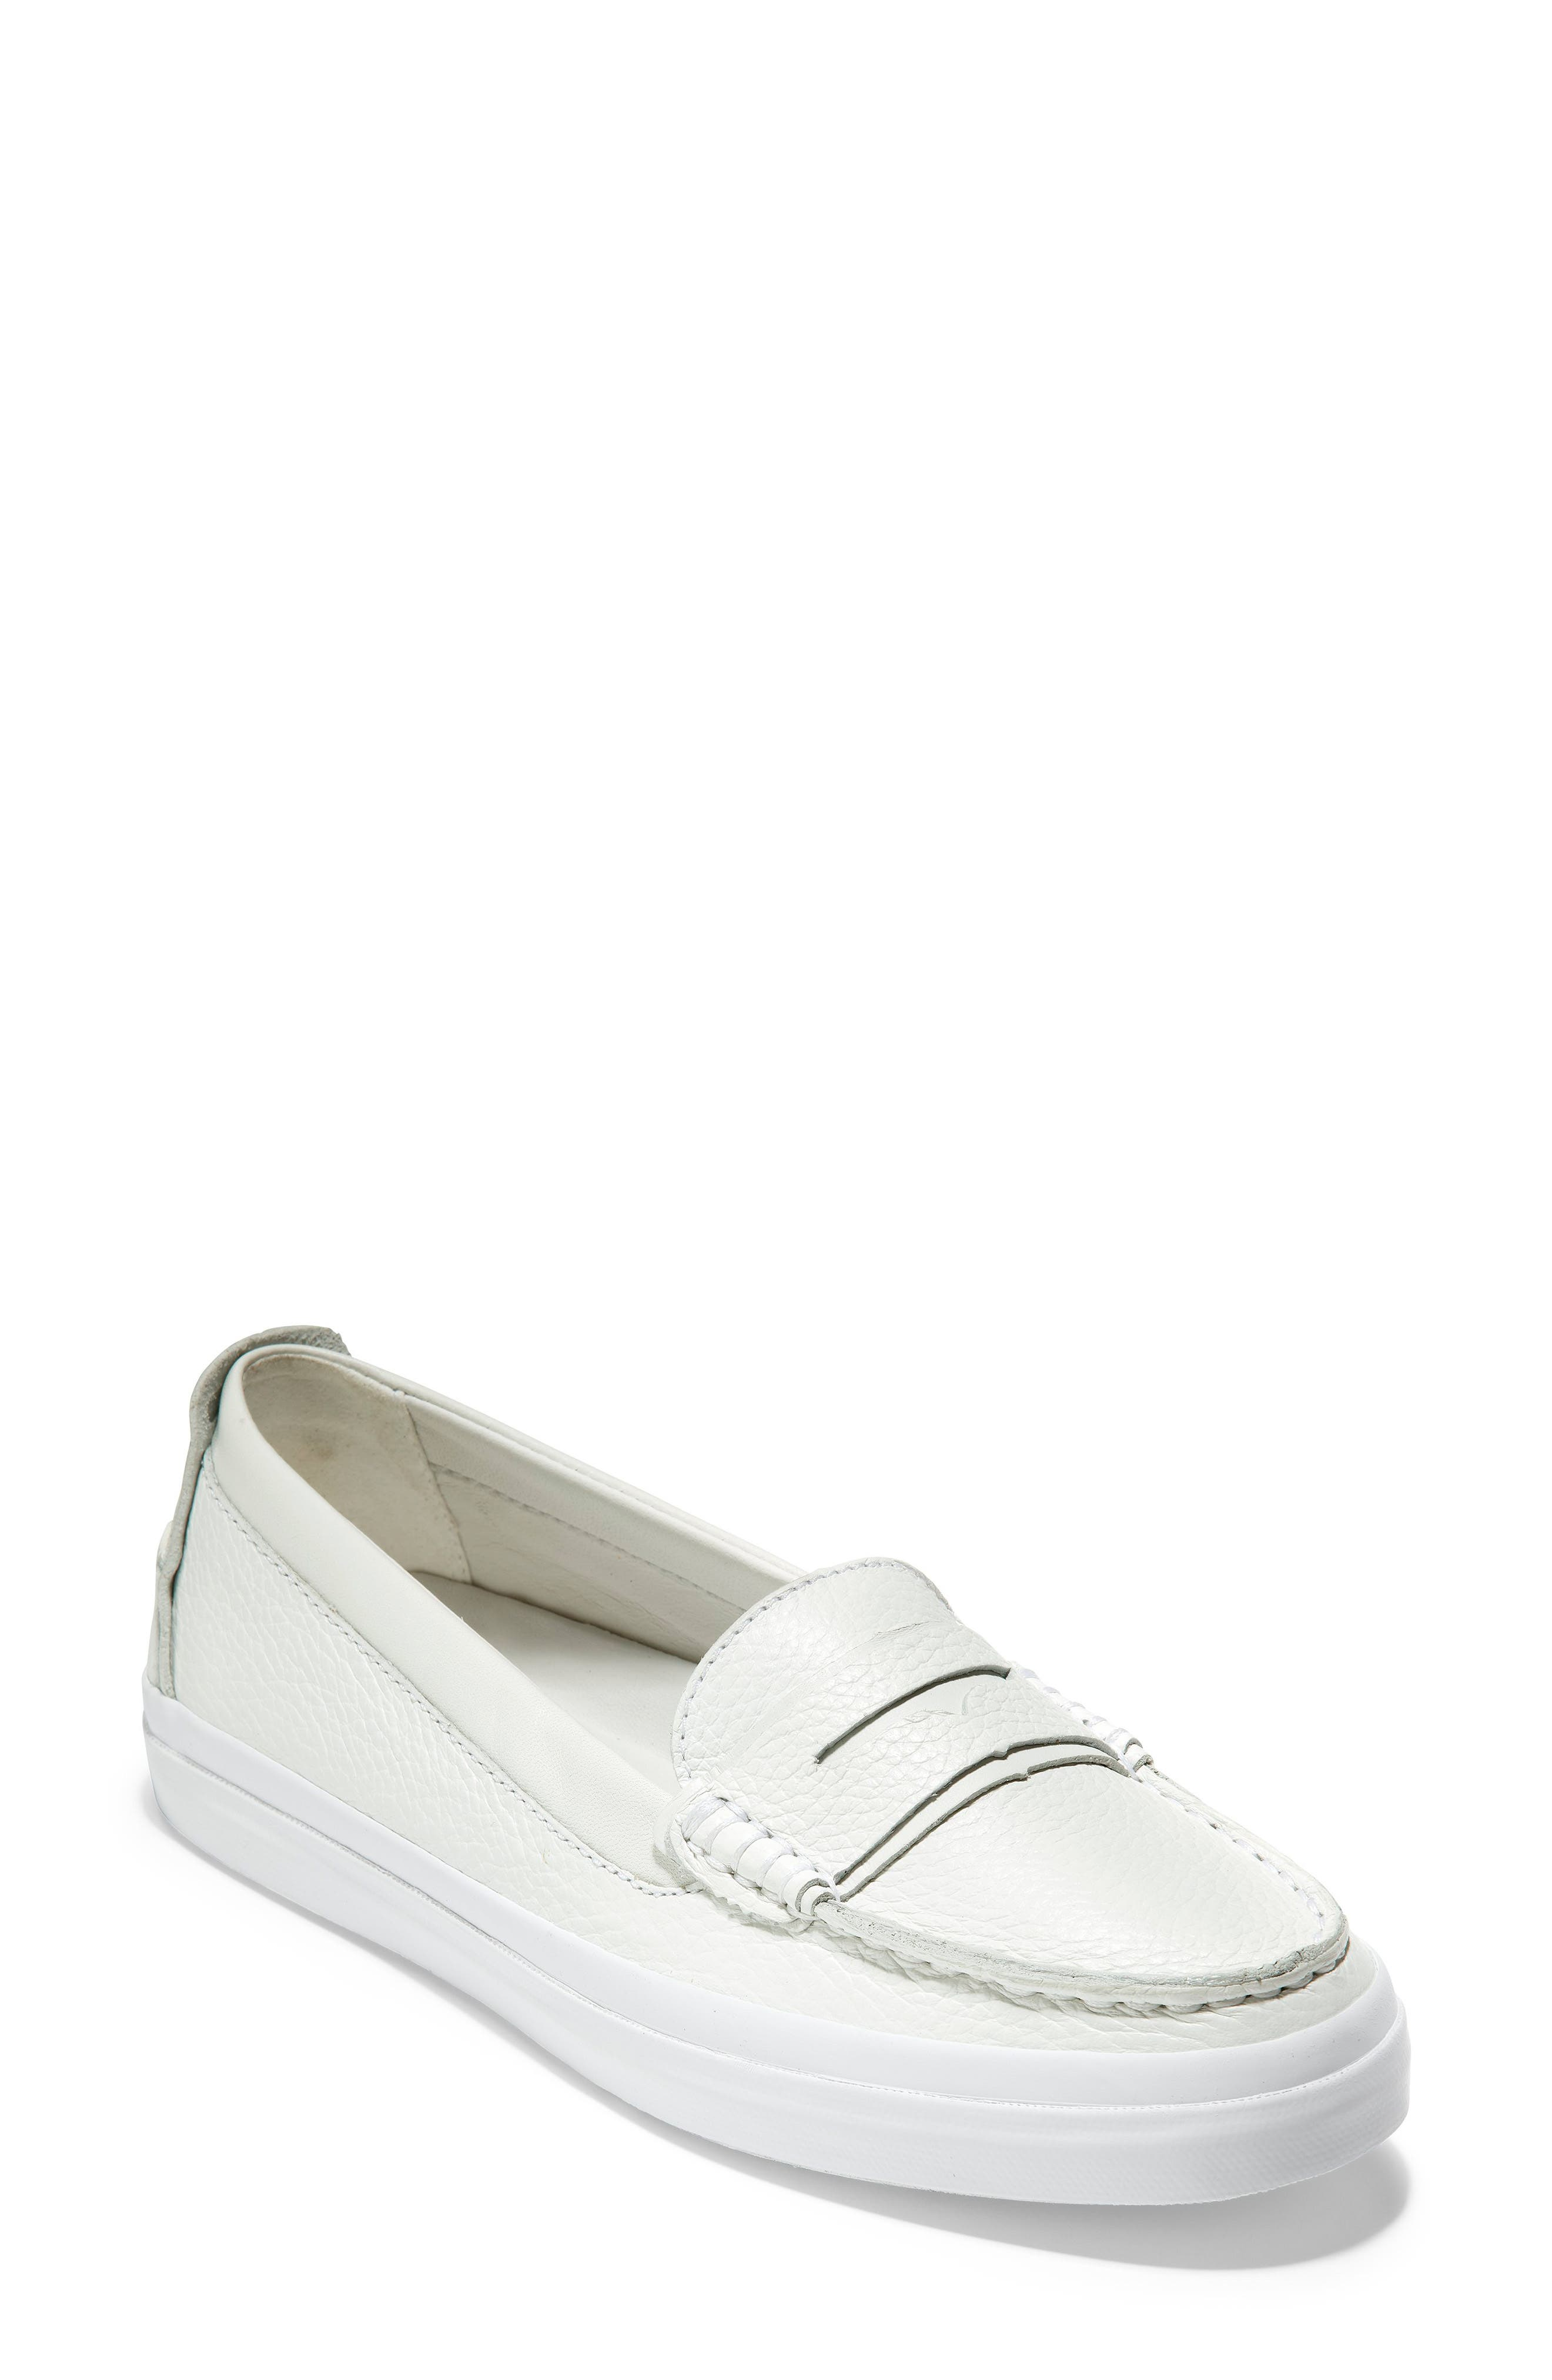 COLE HAAN, Pinch LX Loafer, Main thumbnail 1, color, OPTIC WHITE LEATHER